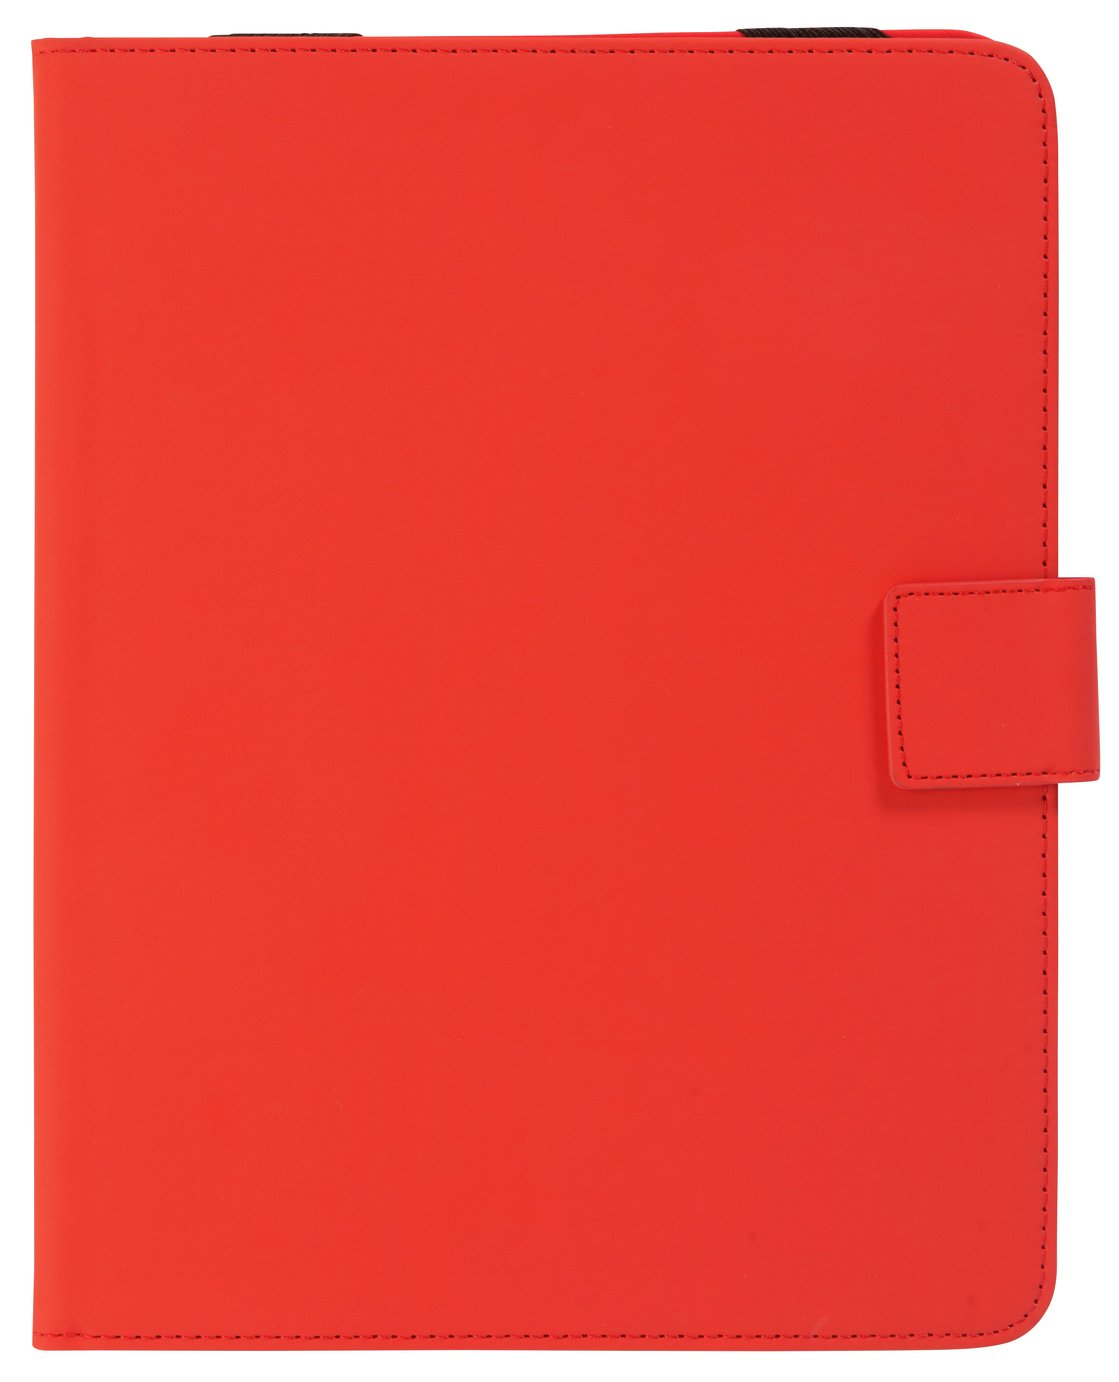 Universal - 9/10 Inch PVC Tablet Case - Red from Universal